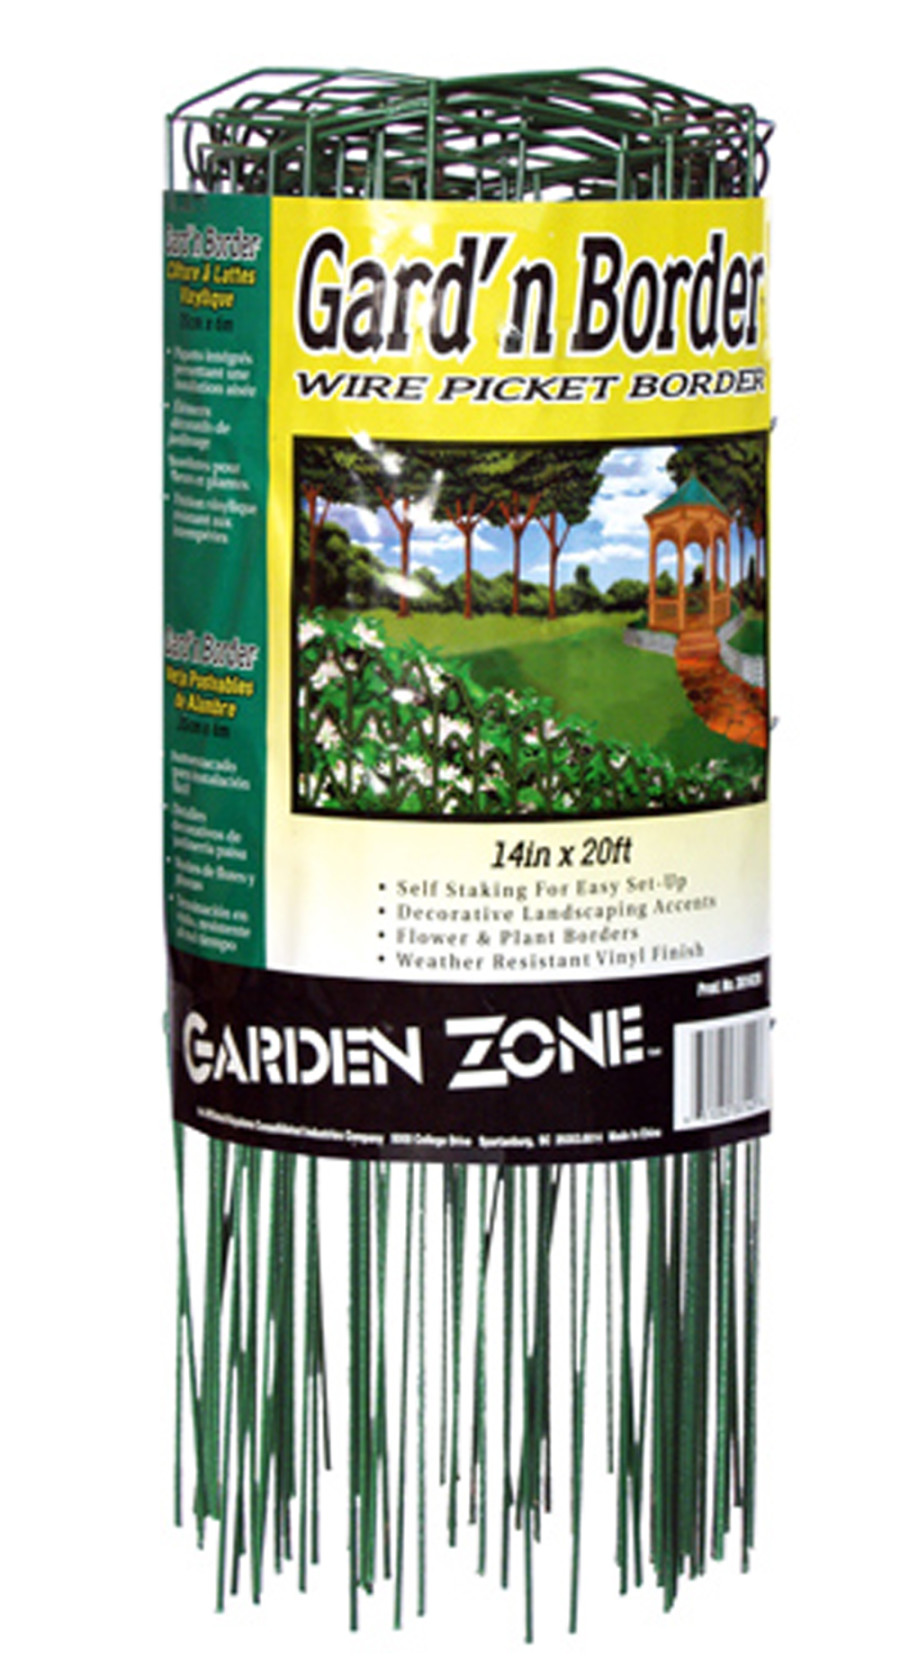 Garden Zone Gard'n Border Wire Picket Border